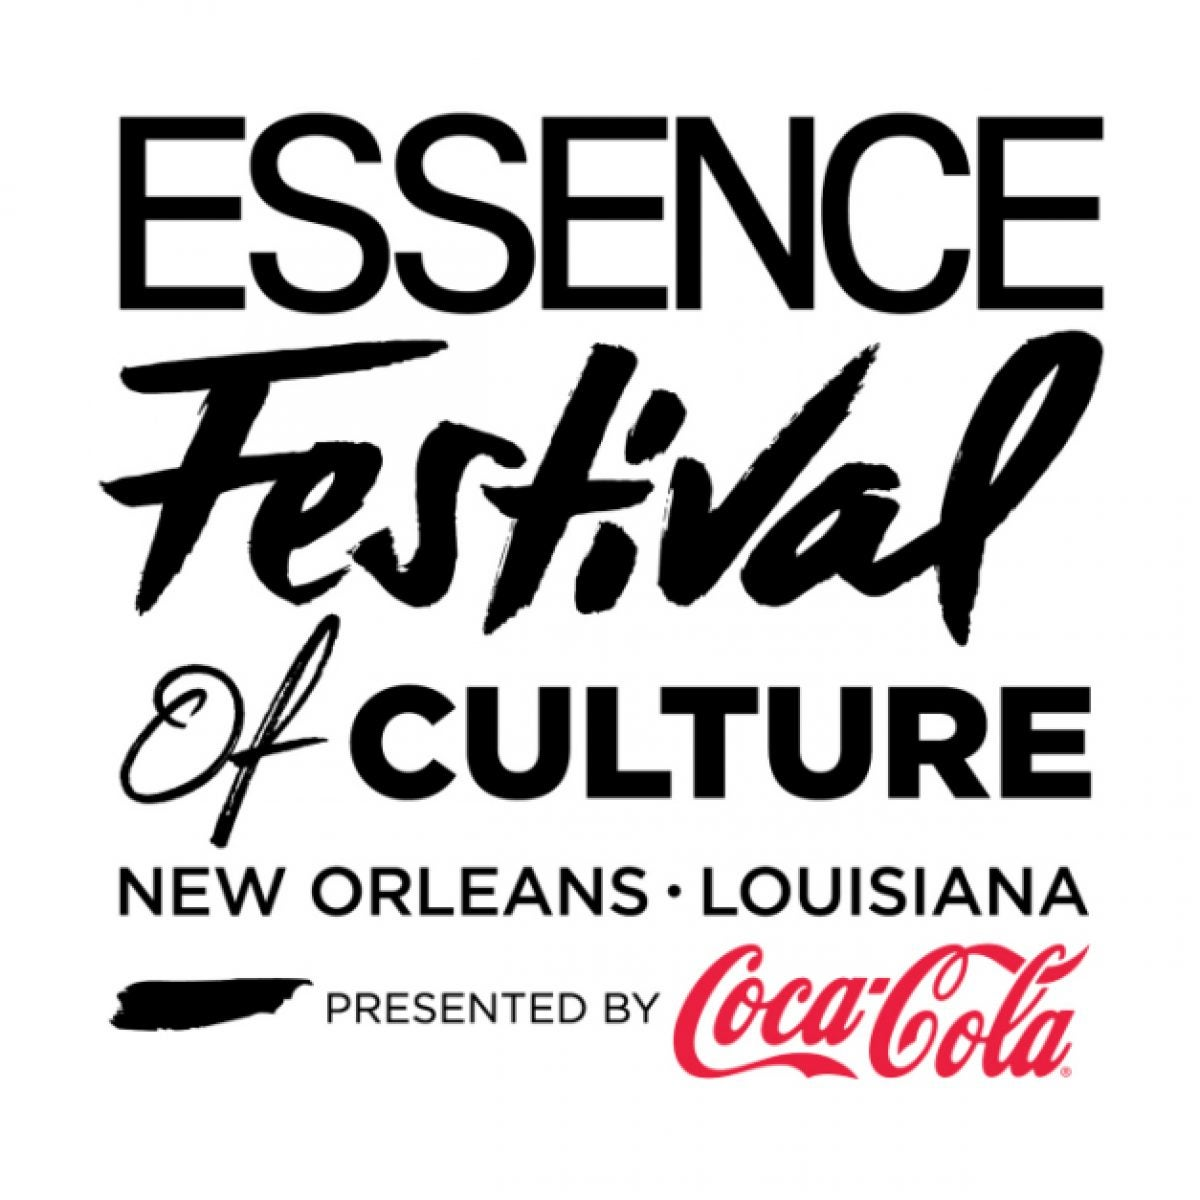 2020 ESSENCE Festival Of Culture Officially Canceled Due To COVID-19